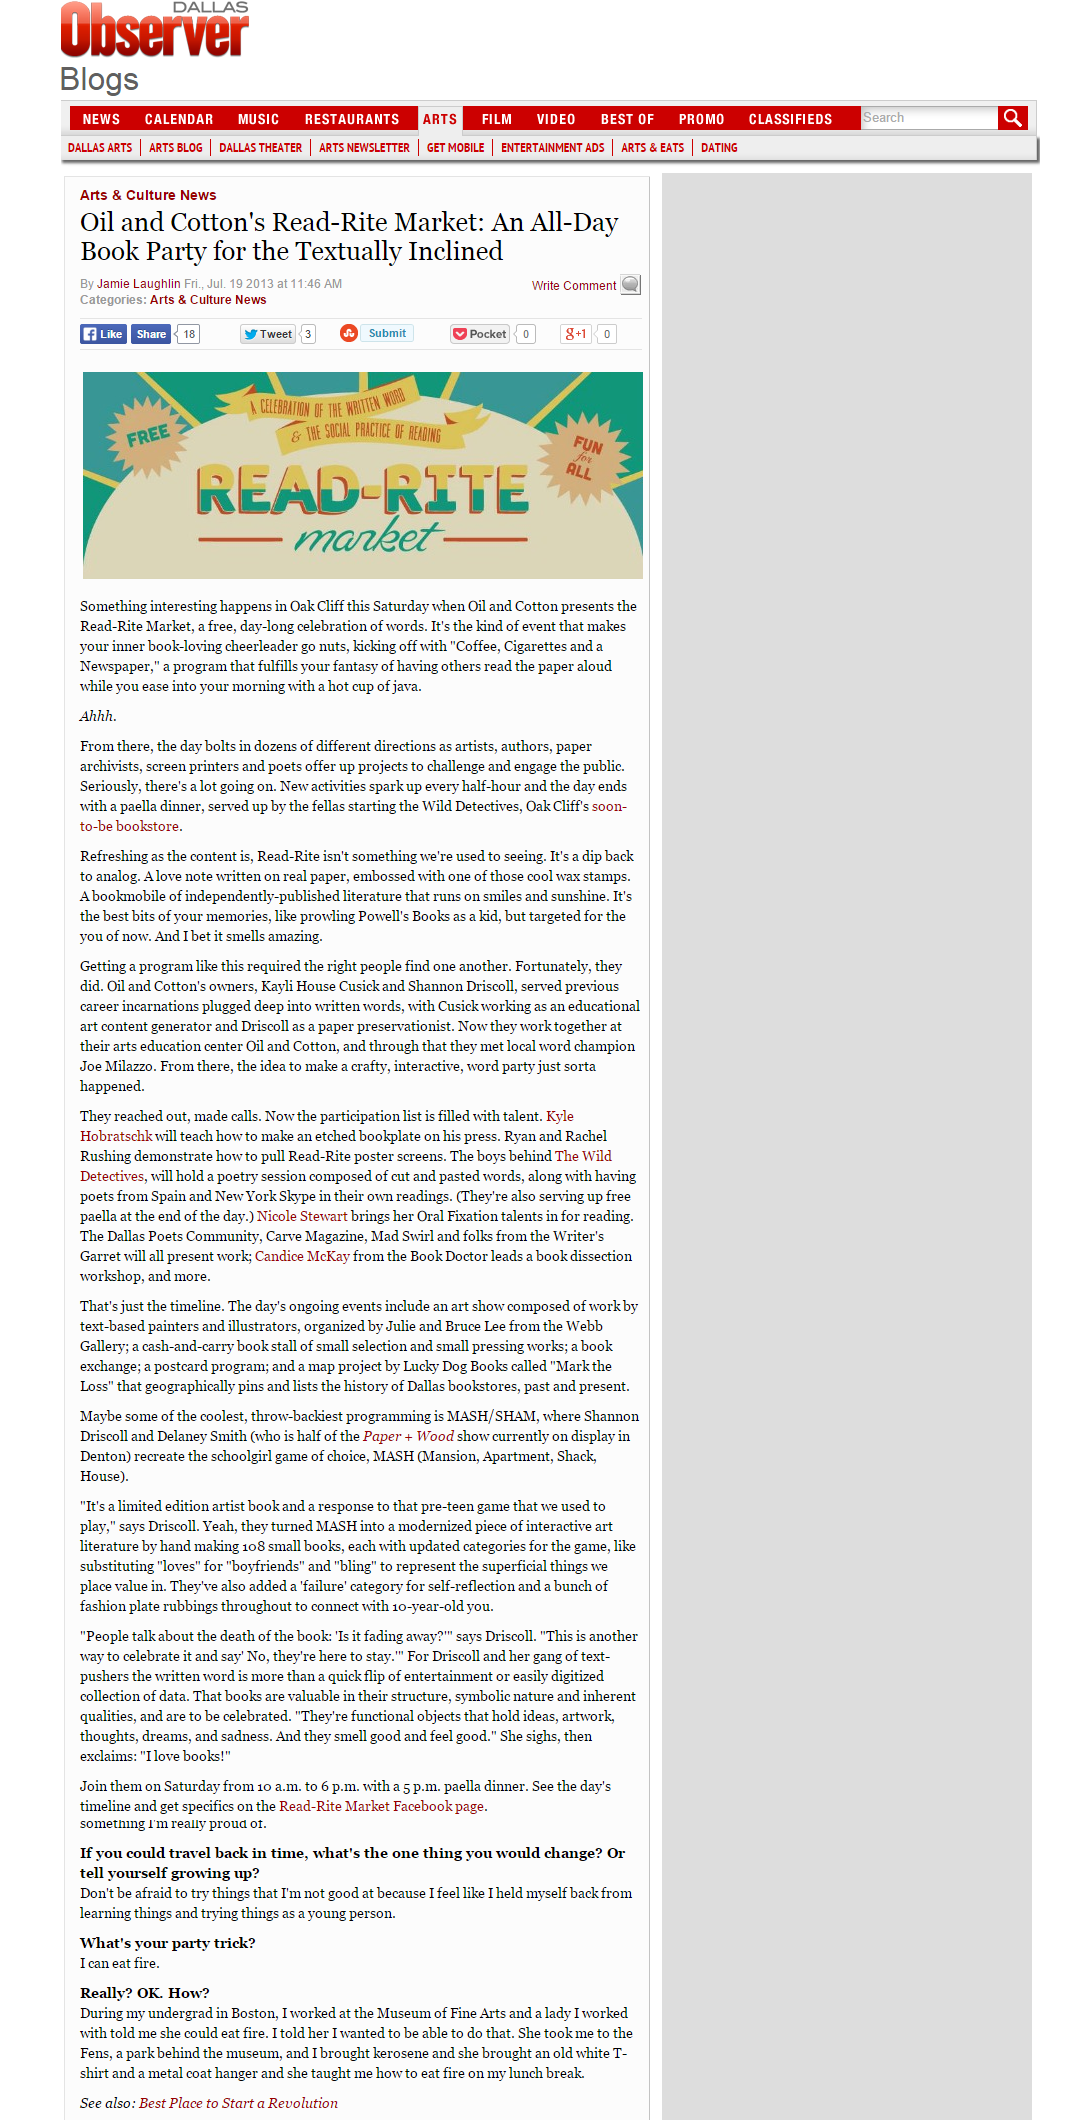 screencapture-blogs-dallasobserver-com-best-of-2013.png